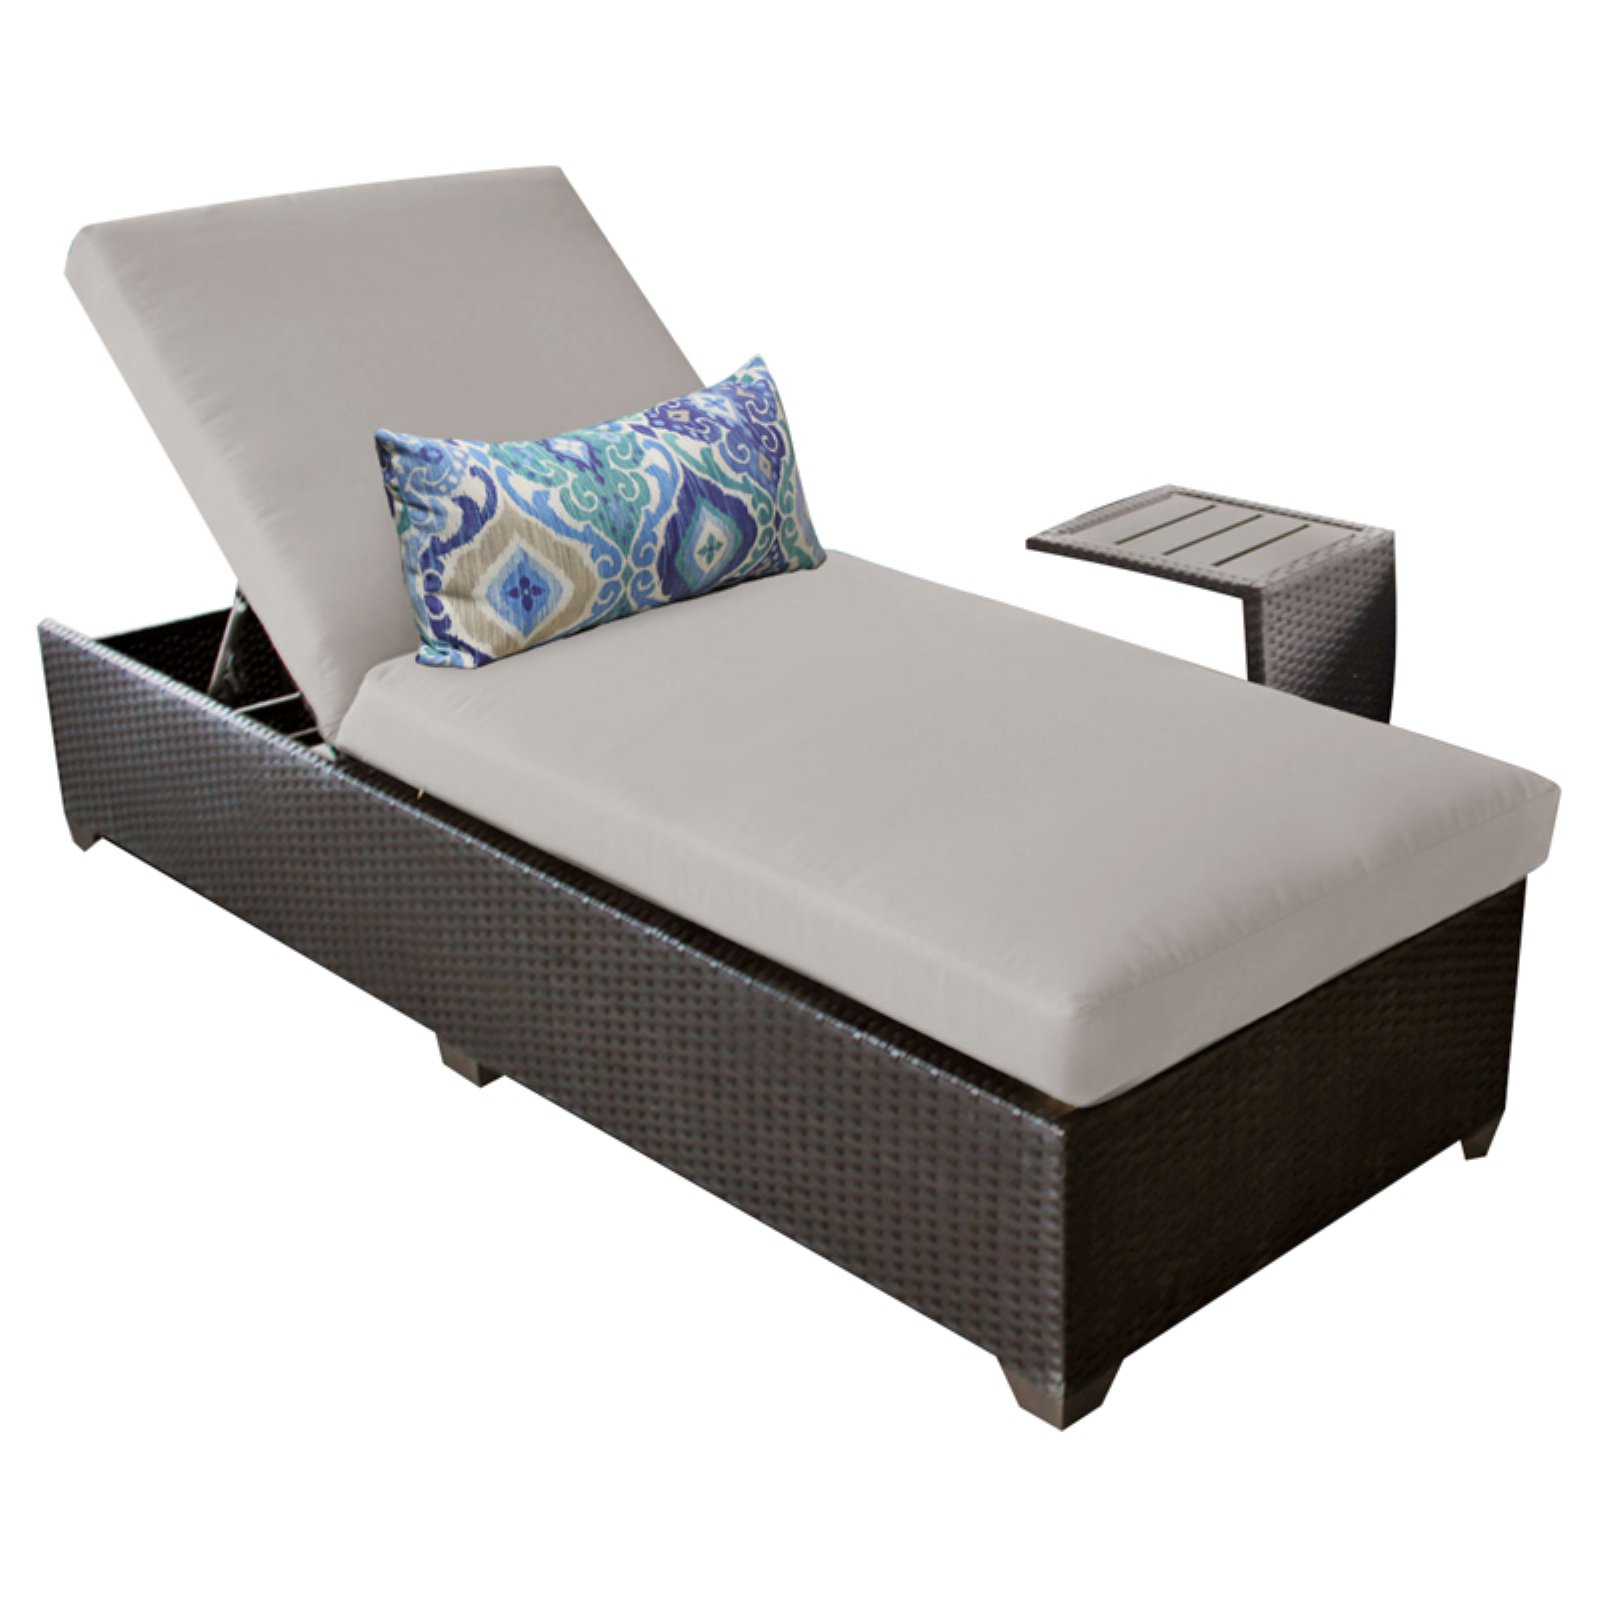 TK Classics Barbados Wicker Patio Chaise Lounge with Optional Side Table